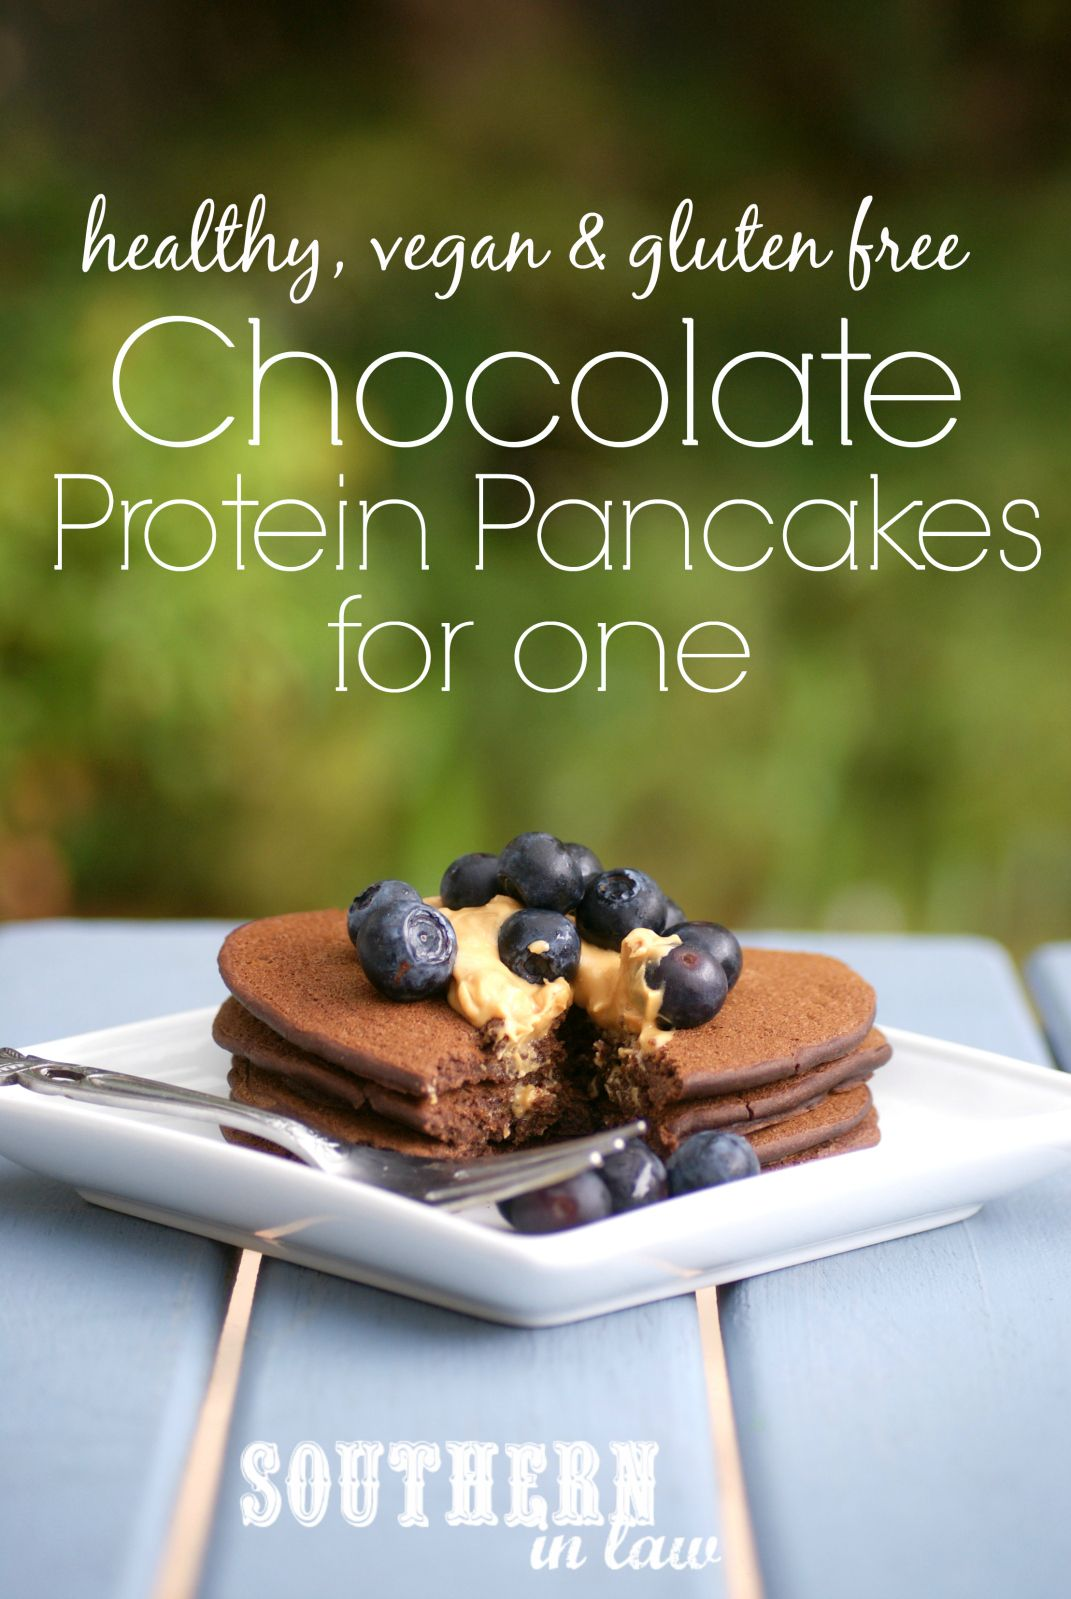 You will never guess that these Chocolate Protein Pancakes are totally healthy as they are so delicious. They are also sugar free, gluten free, low fat and vegan!